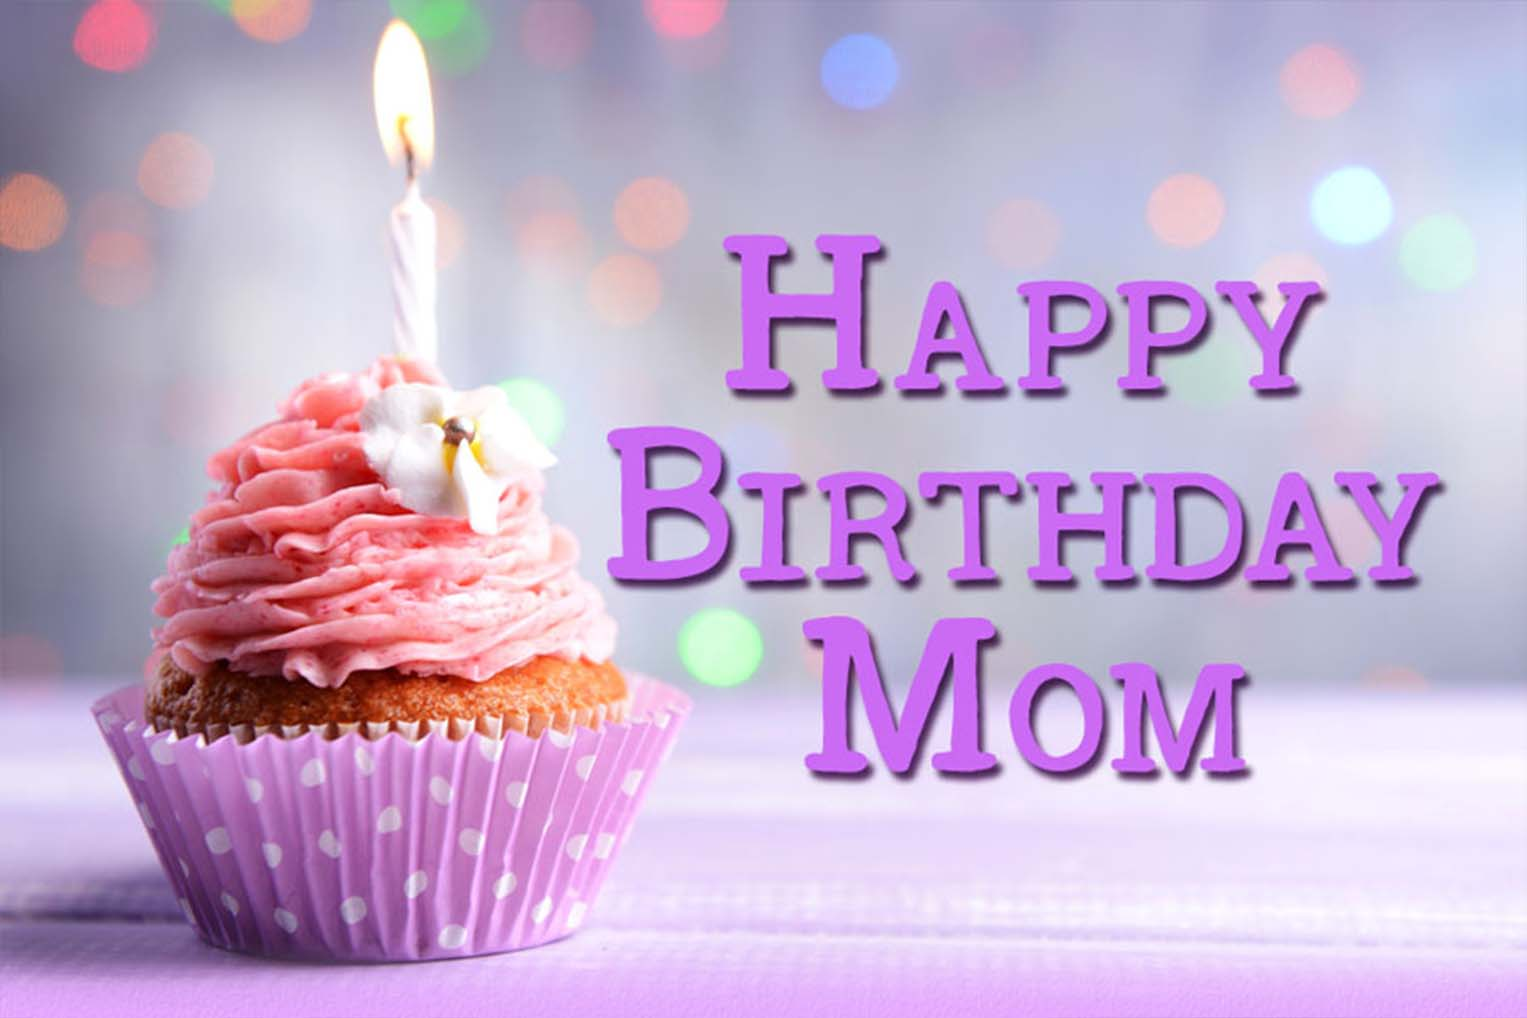 35 Happy Birthday Mom Quotes – Happy Birthday Mom Greetings